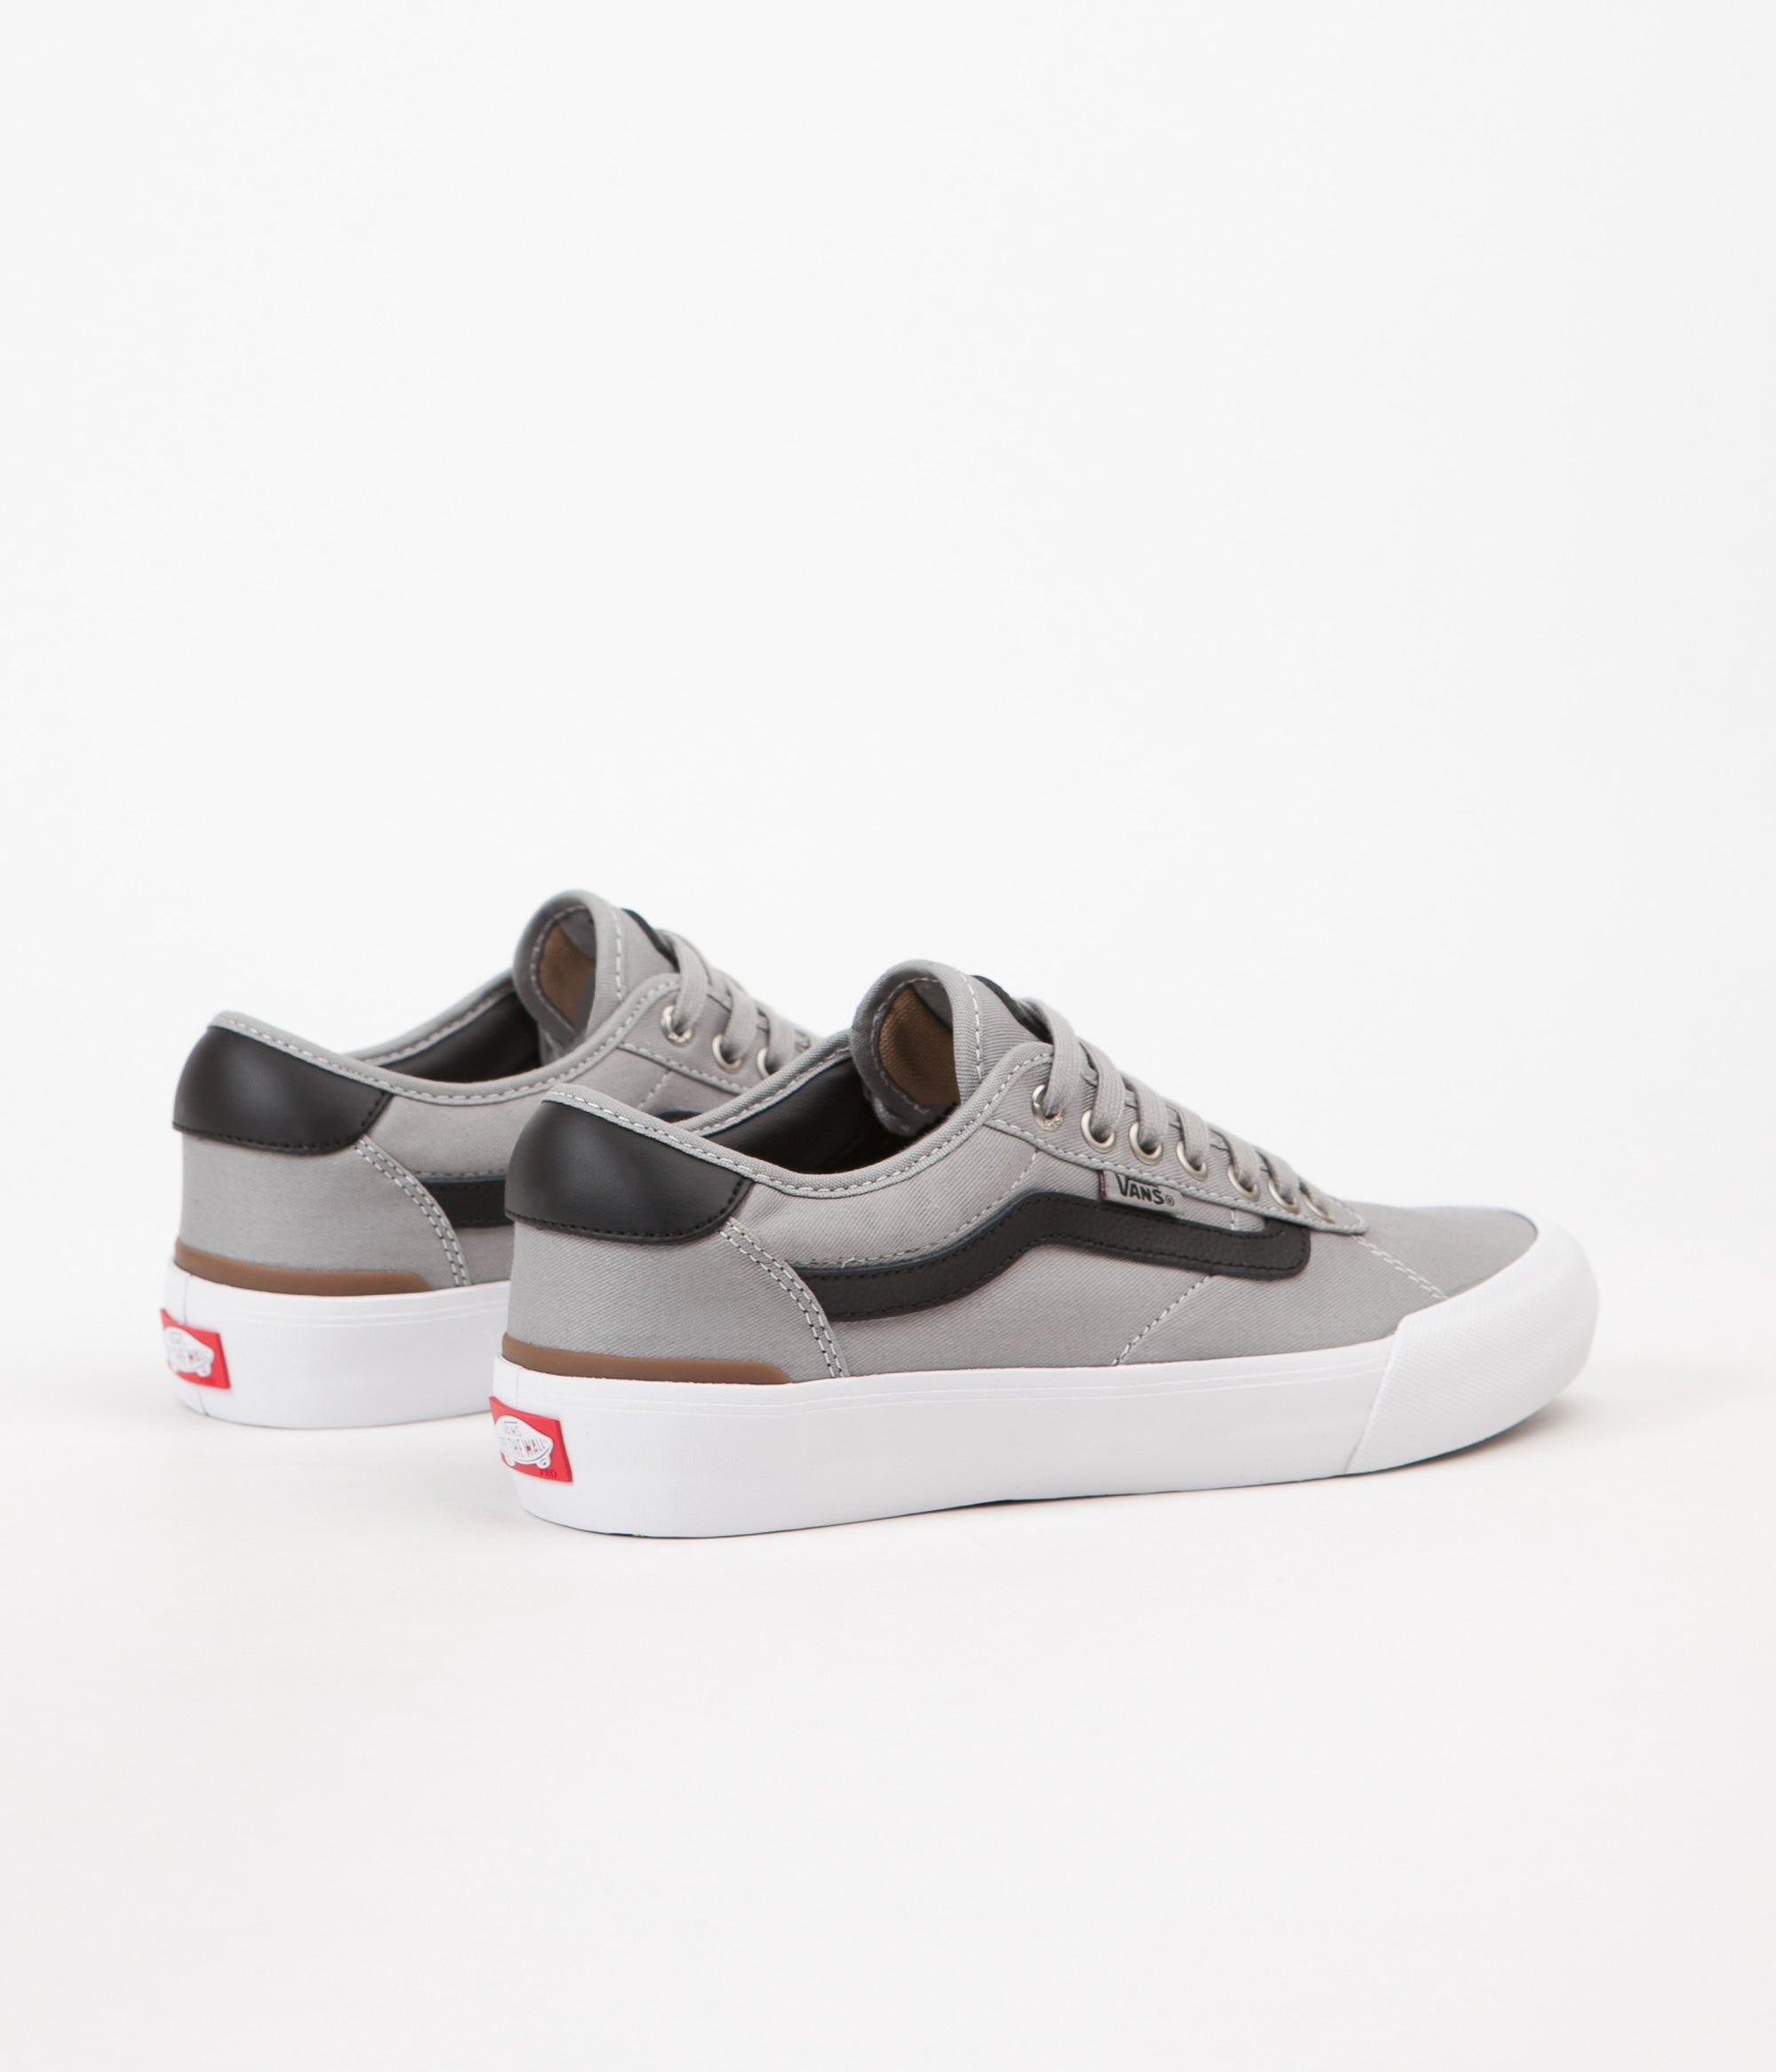 f23c47d678f5cf ... Vans Chima Pro 2 Shoes - Drizzle   Black   White ...